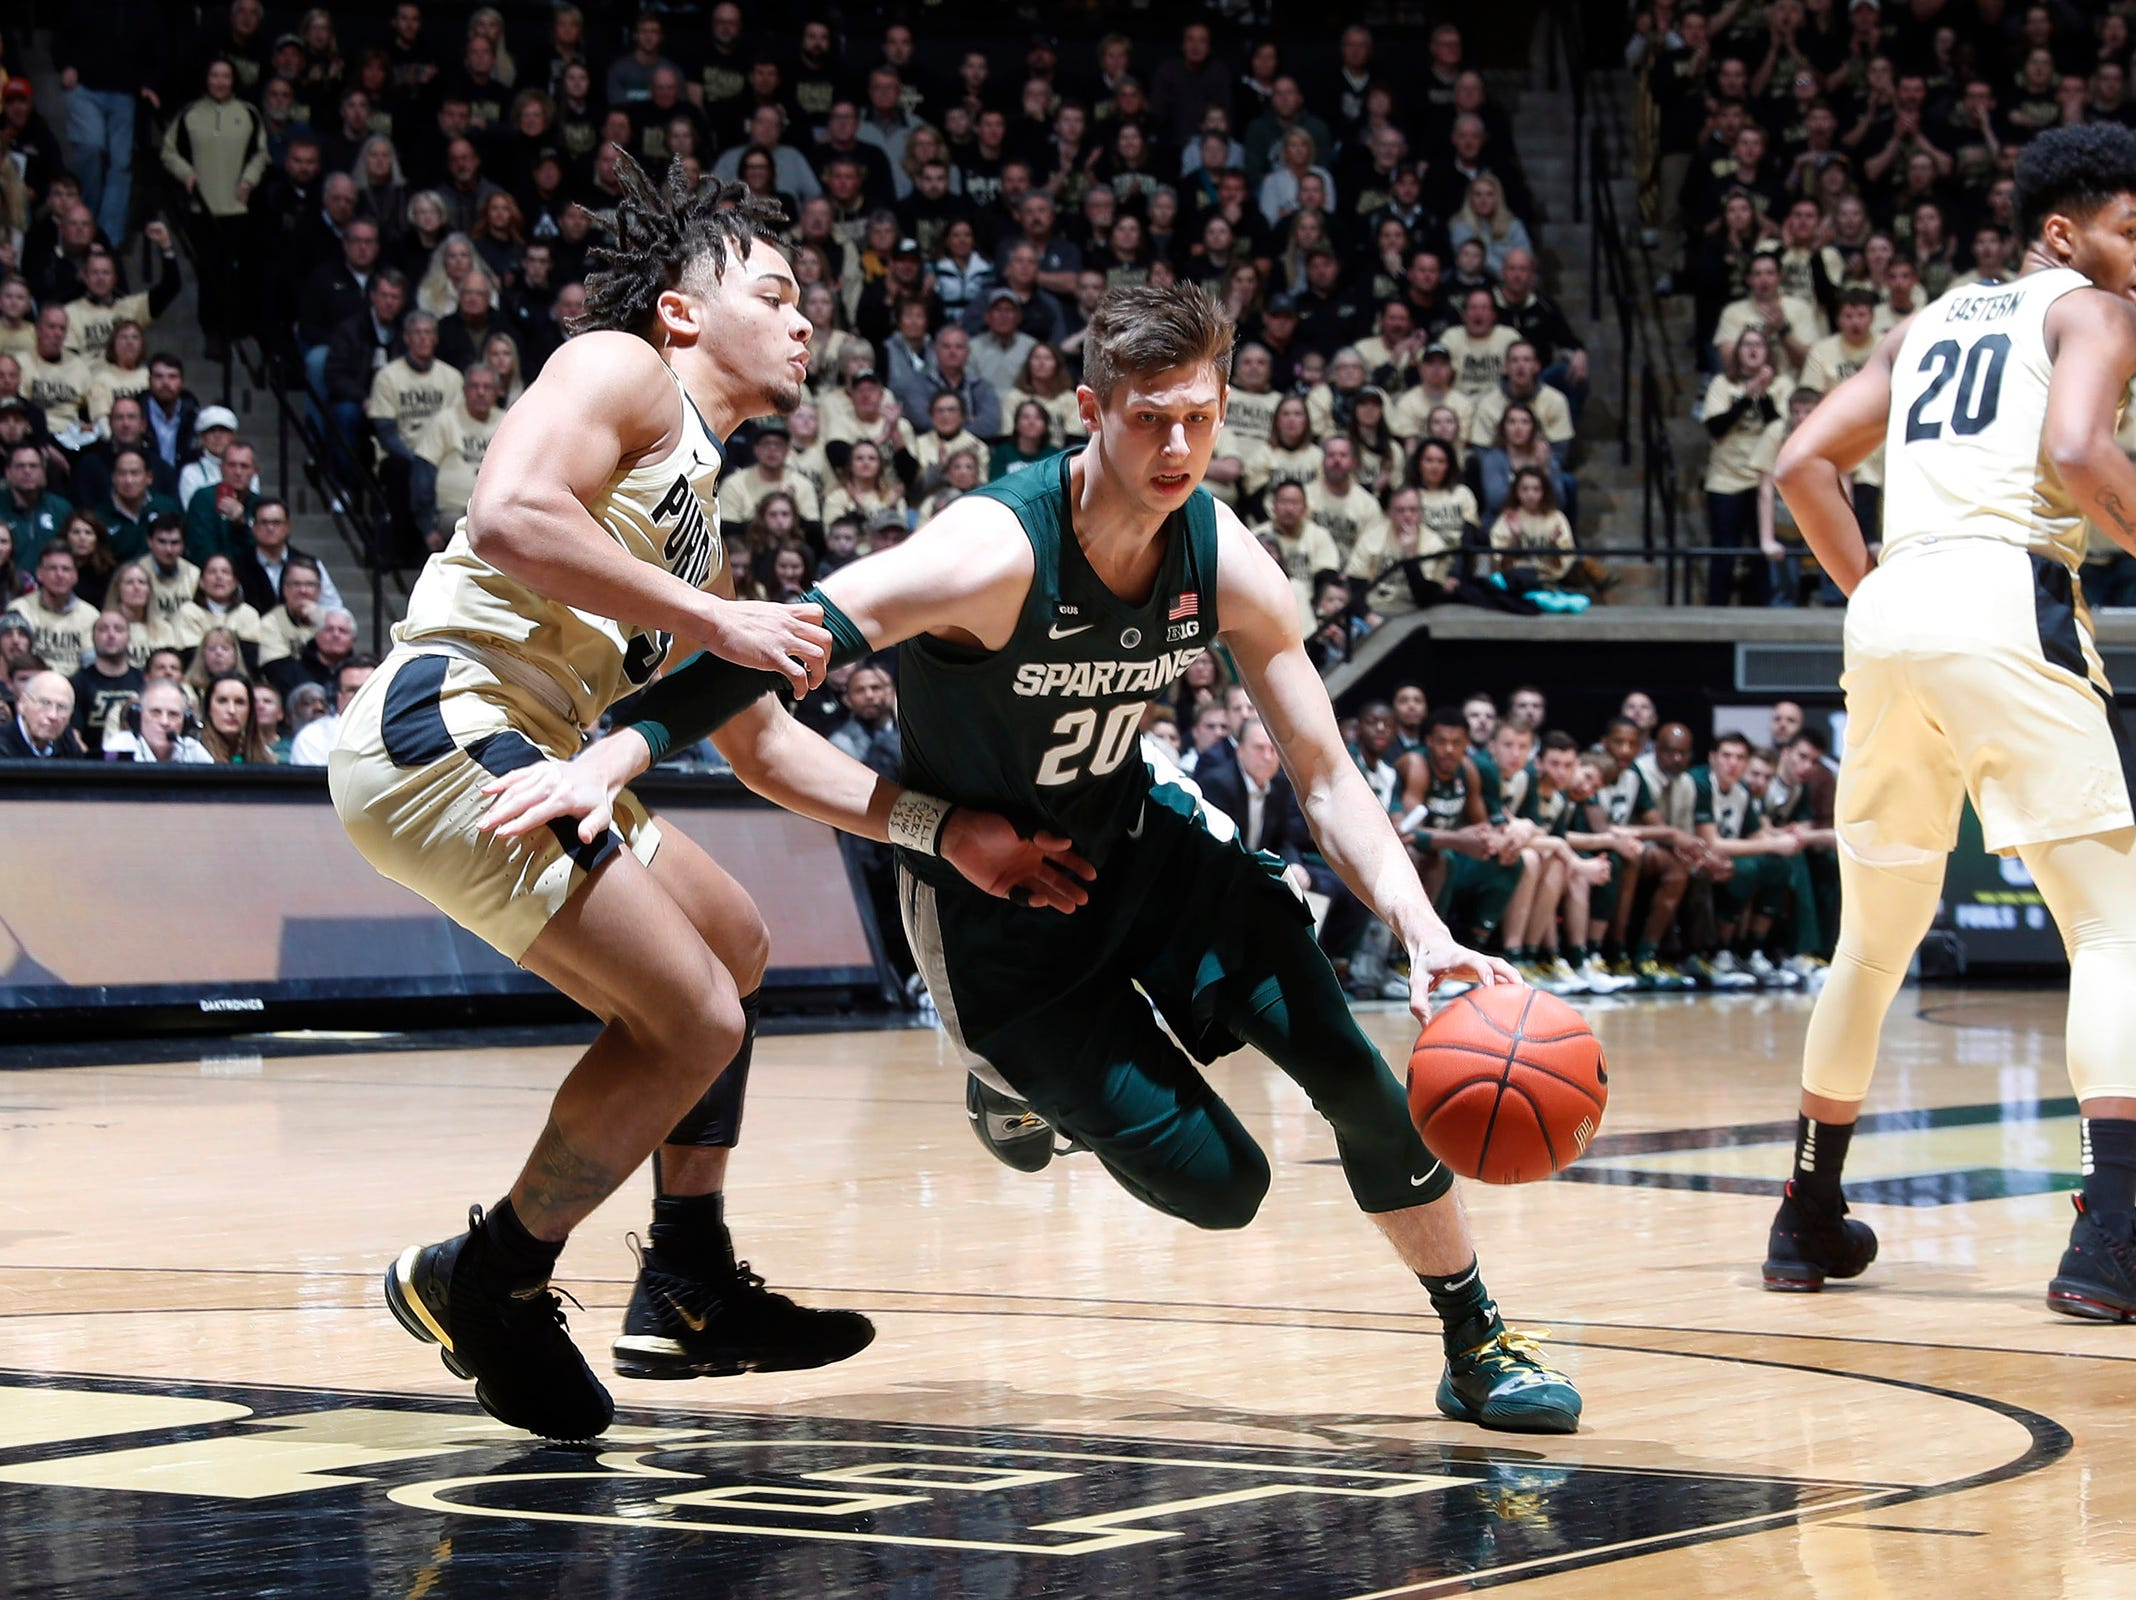 Michigan State guard Matt McQuaid dribbles the ball around Purdue guard Carsen Edwards during the first half on Sunday, Jan. 27, 2019, in West Lafayette, Ind.